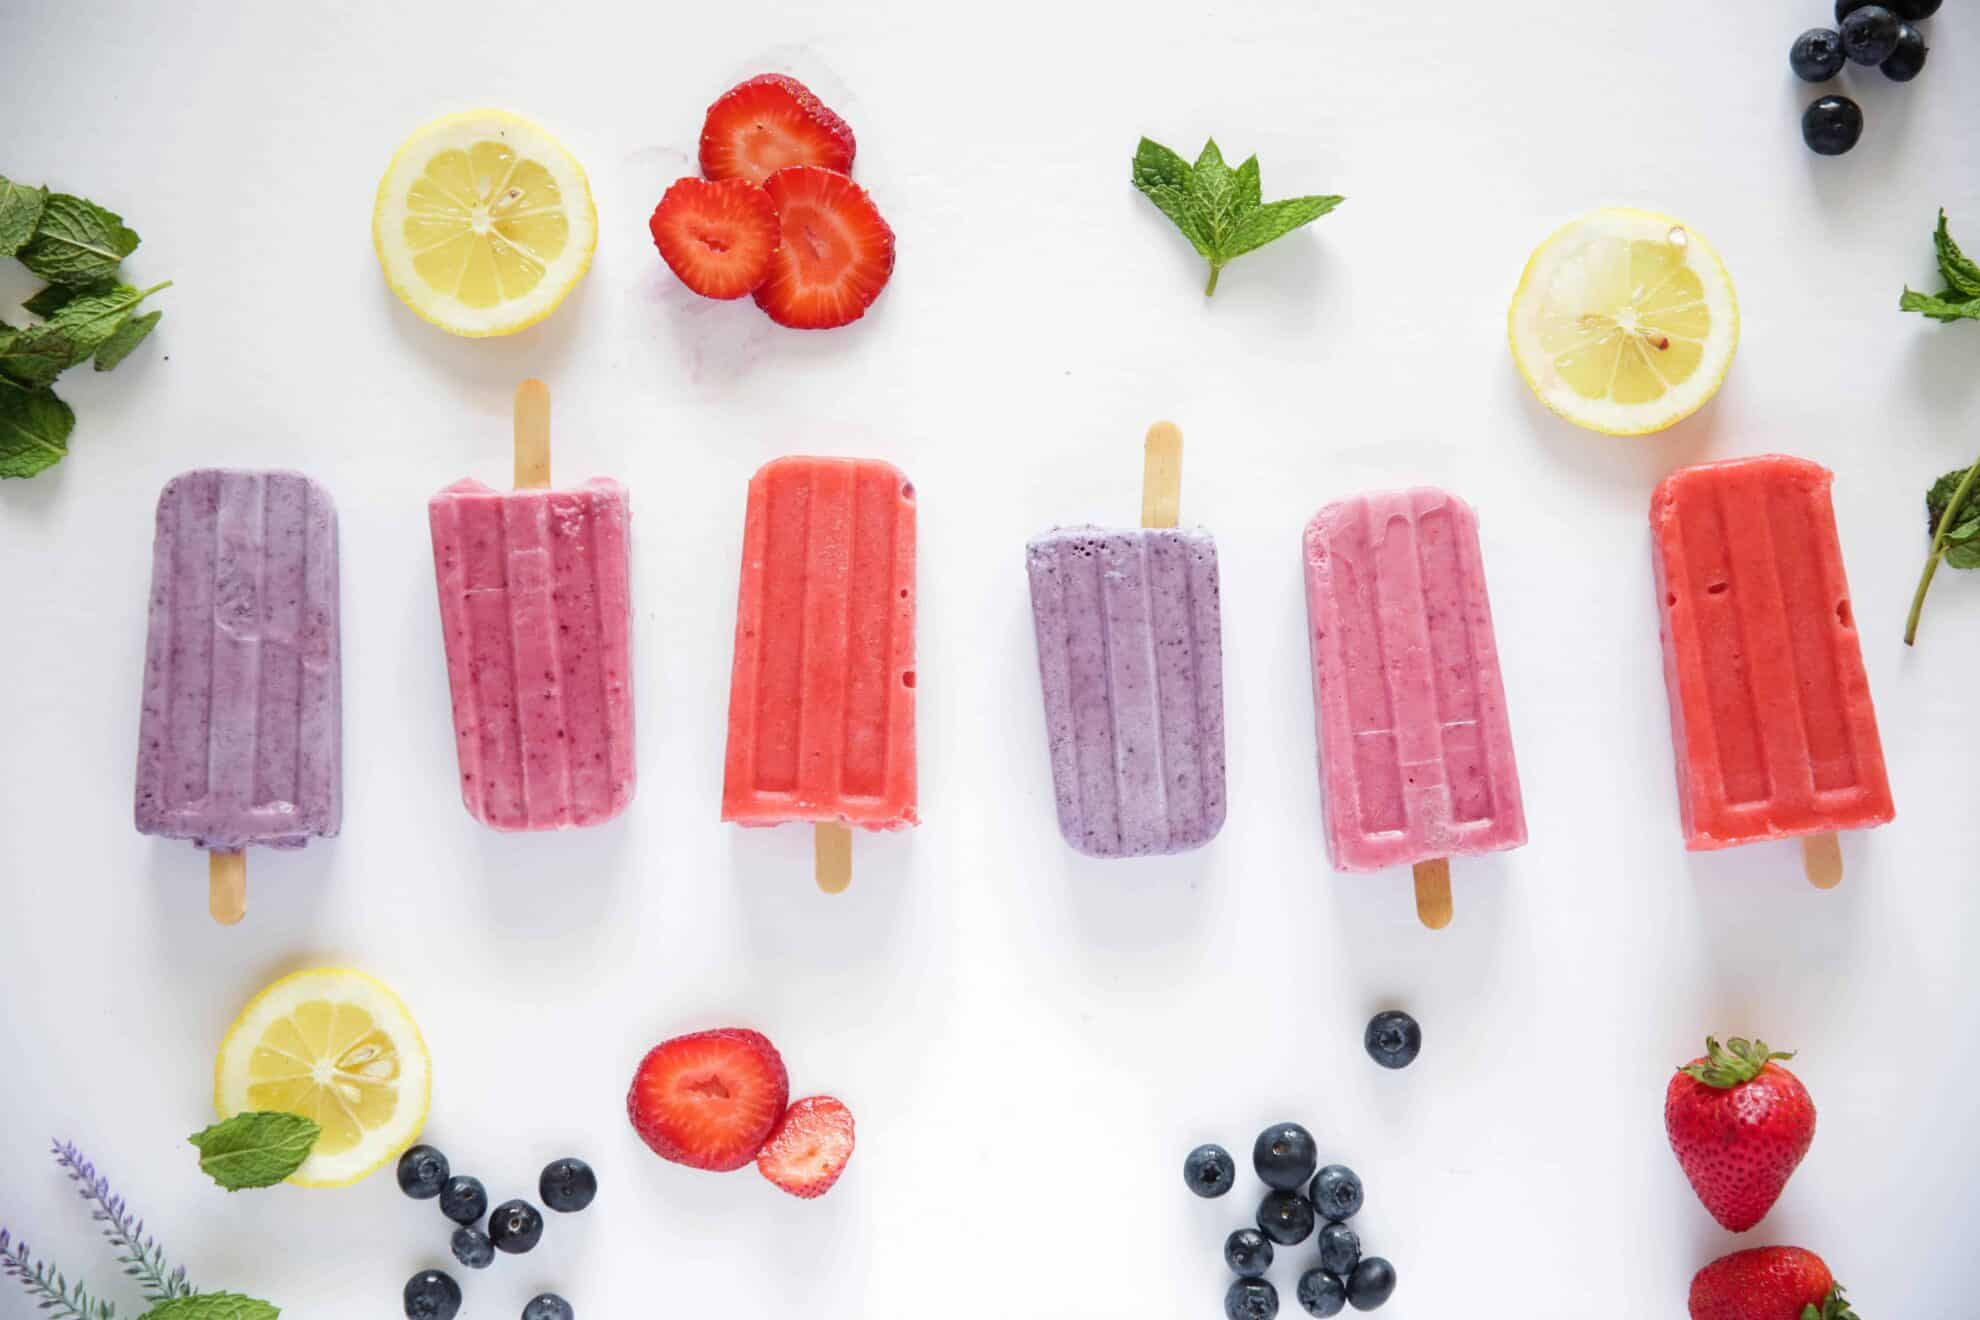 fruit and popsicles on white background